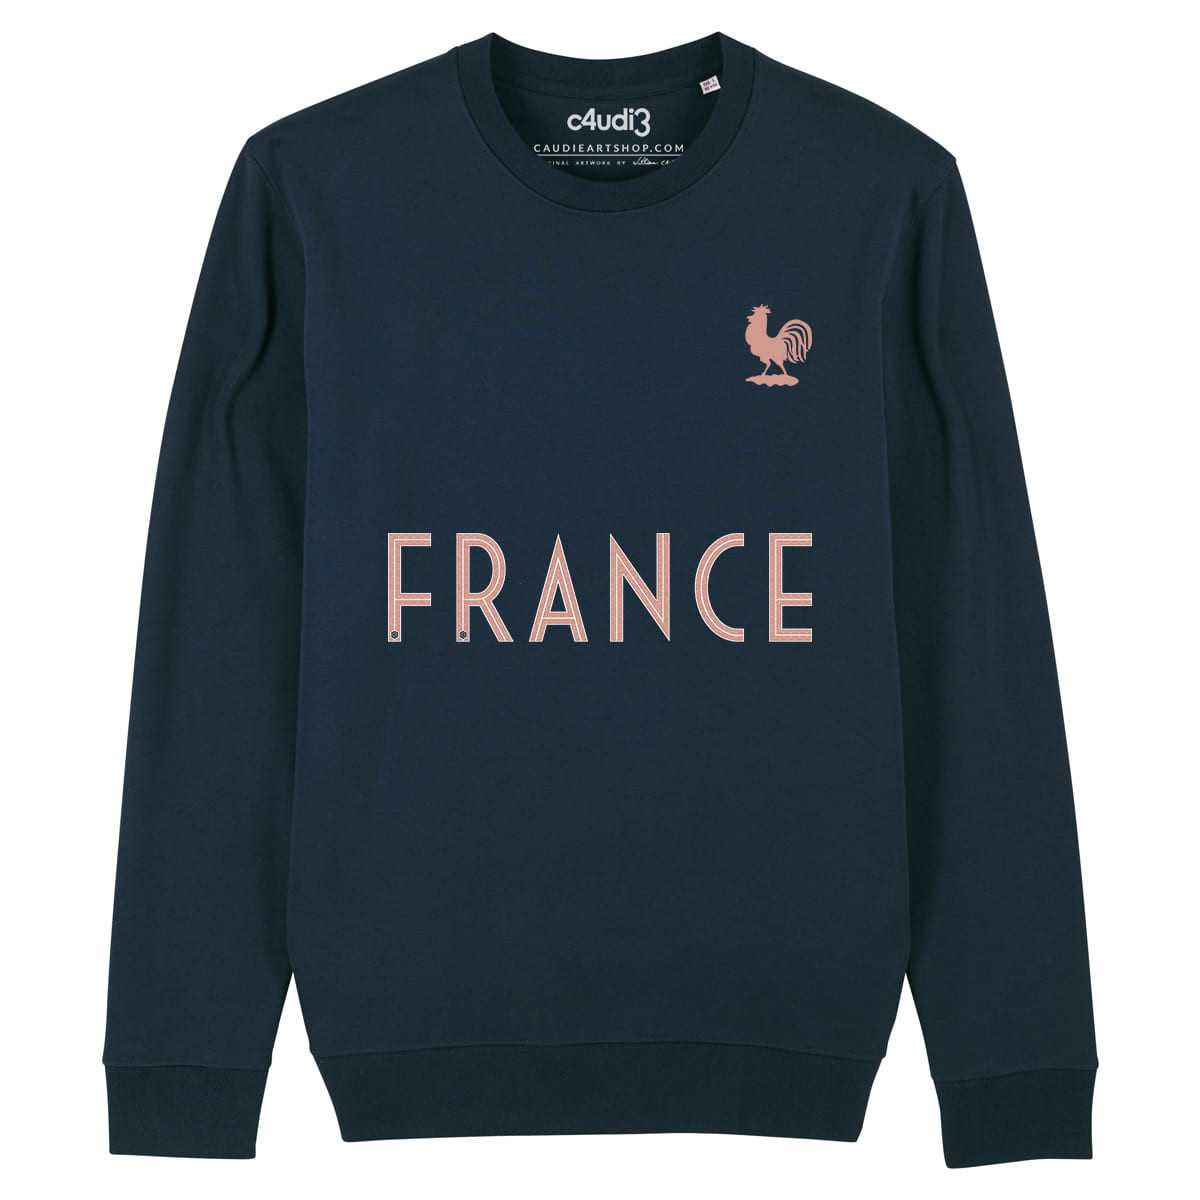 SUPPORTER FRANCE - Sweat - Caudie